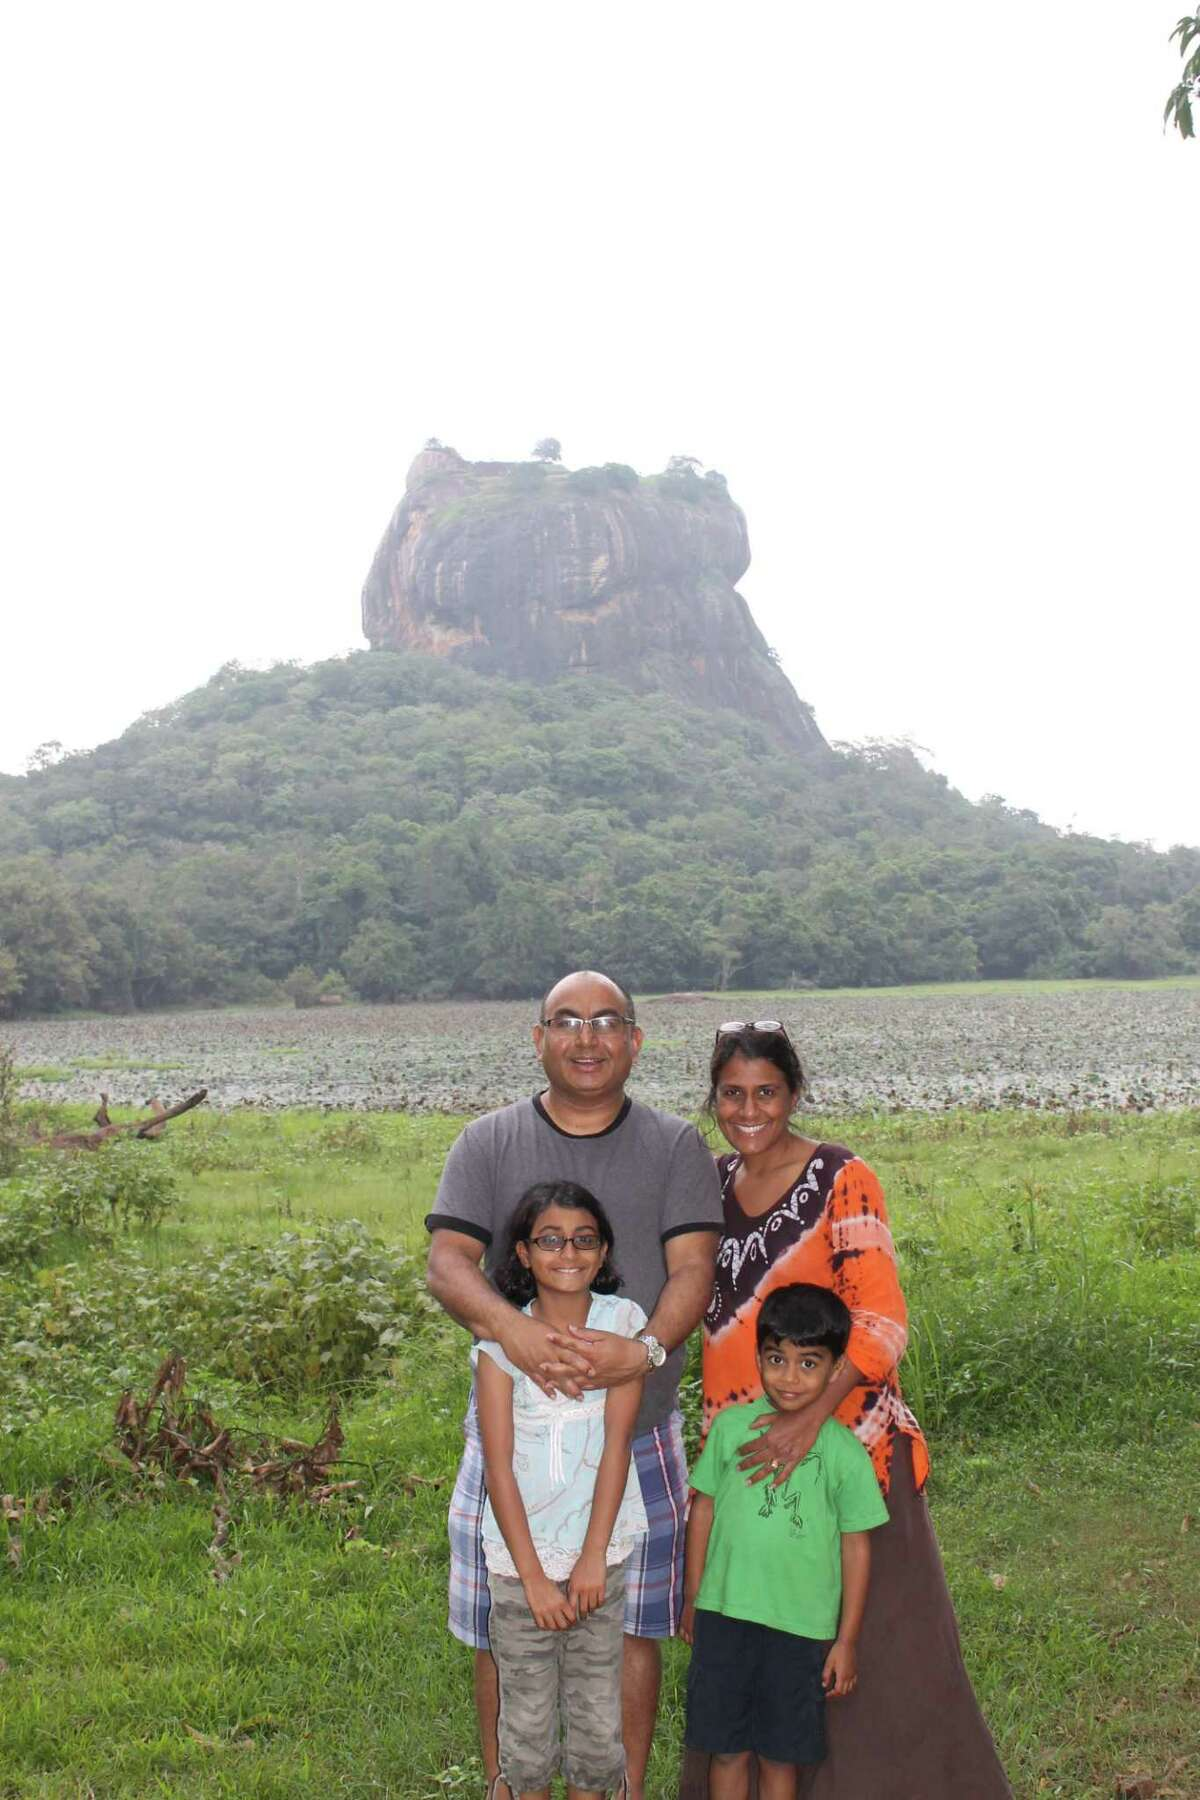 Guilderland resident Fazana Saleem-Ismail with her family in front of Sigiriya Rock, an ancient rock fortress and UNESCO world heritage site in Sri Lanka, her parents' birth country in an undated photo.